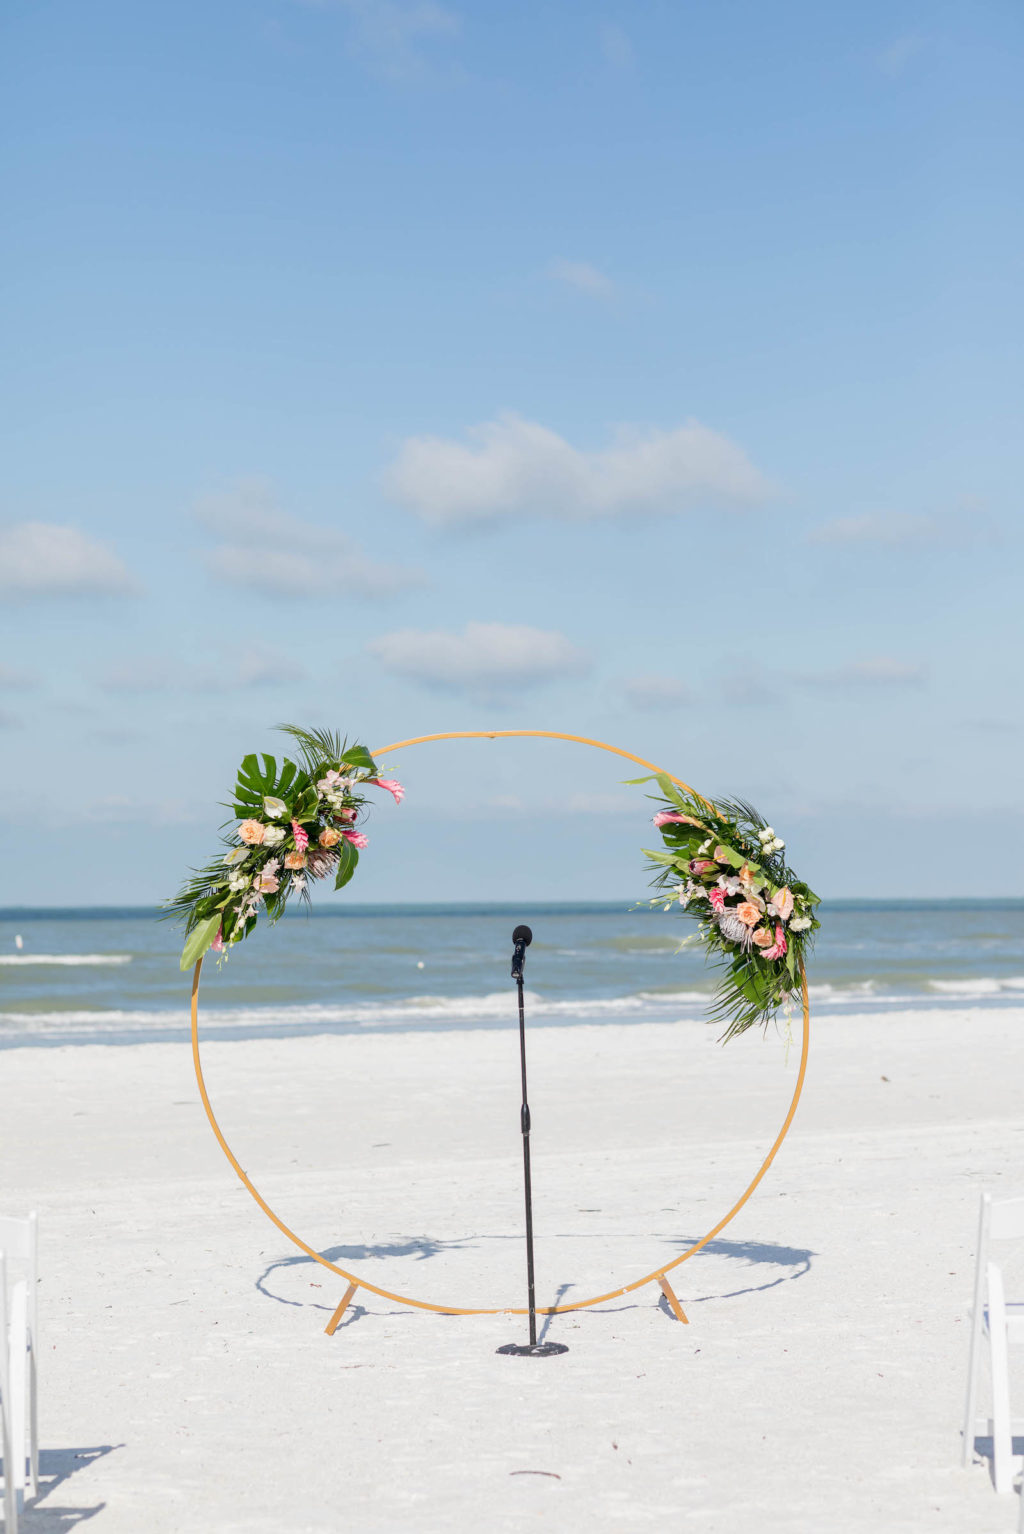 Beach Wedding Round Arch Beach Wedding Round Arch Floral Arrangement Spray | Tropical Wedding Flowers with Monstera Leaf Greenery, Peach Roses, White Anthurium, and Pink ProteaArrangement Spray | Tropical Wedding Bride and Bridesmaid Bouquets with Monstera Leaf Greenery, Peach Roses, White Anthurium, and Pink Protea